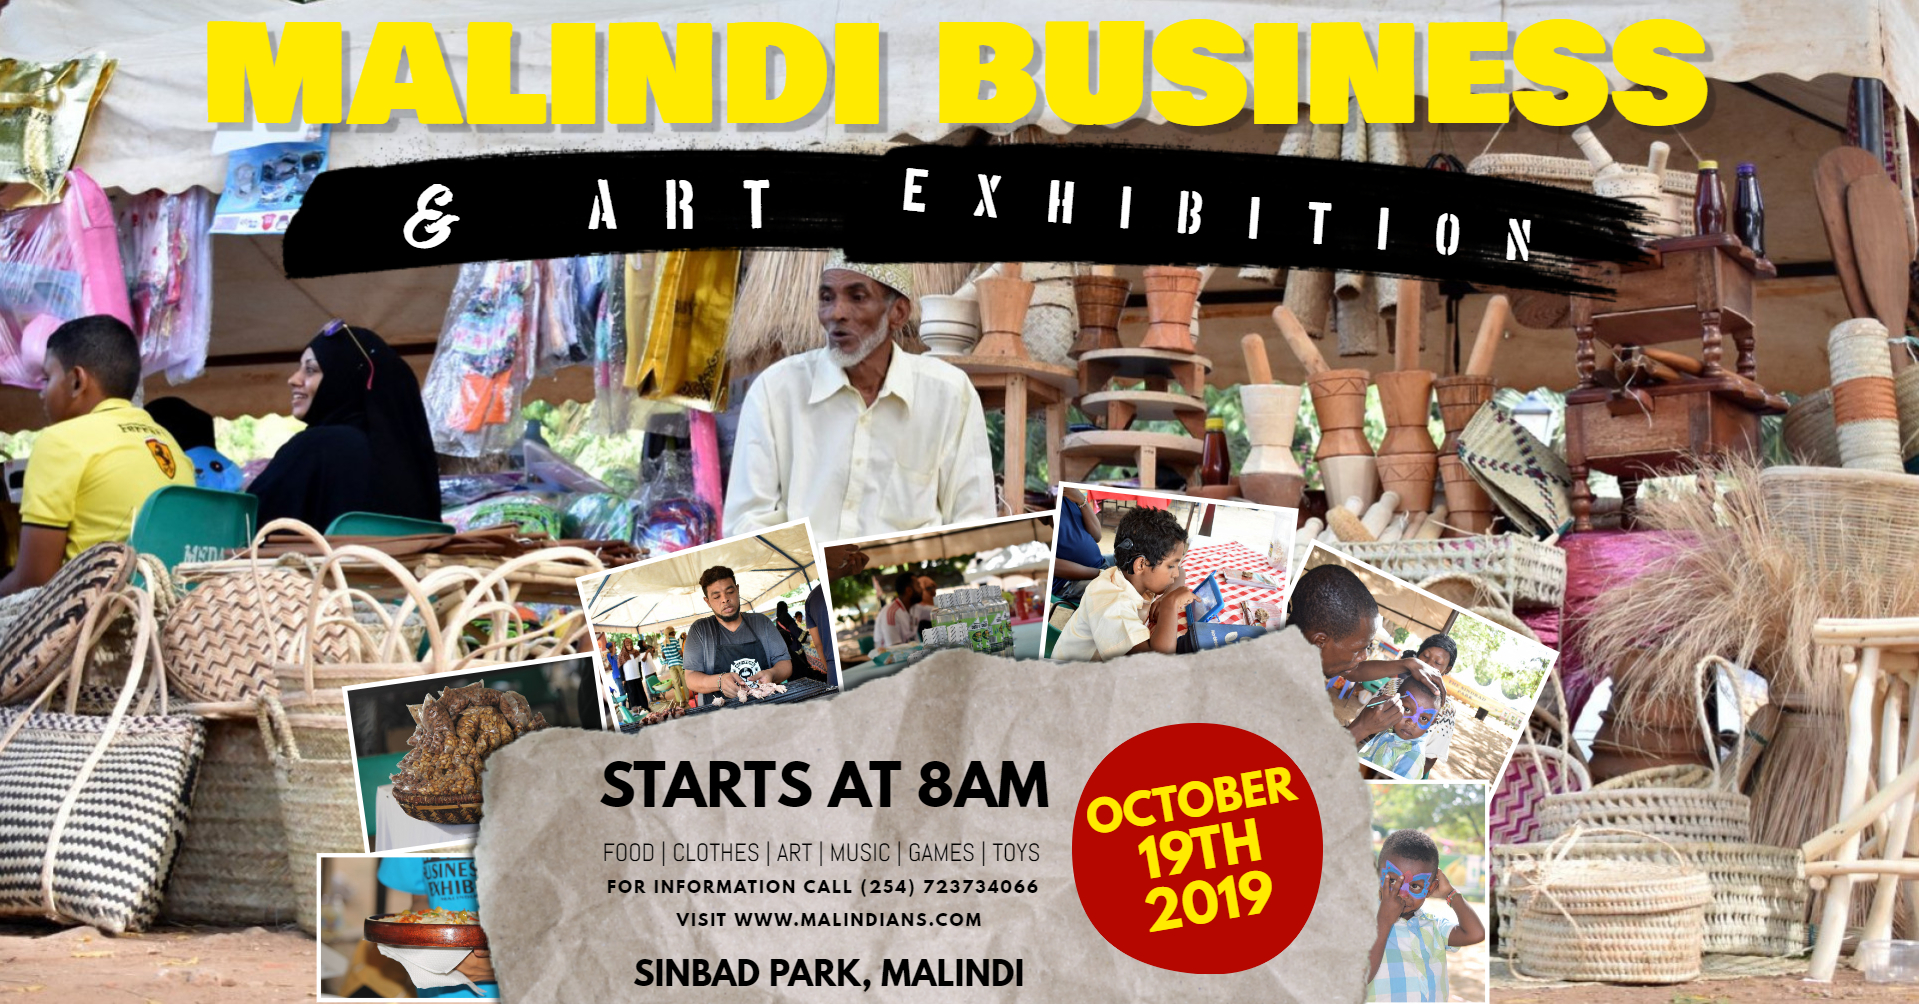 Malindi Business & Art Exhibition edition 2